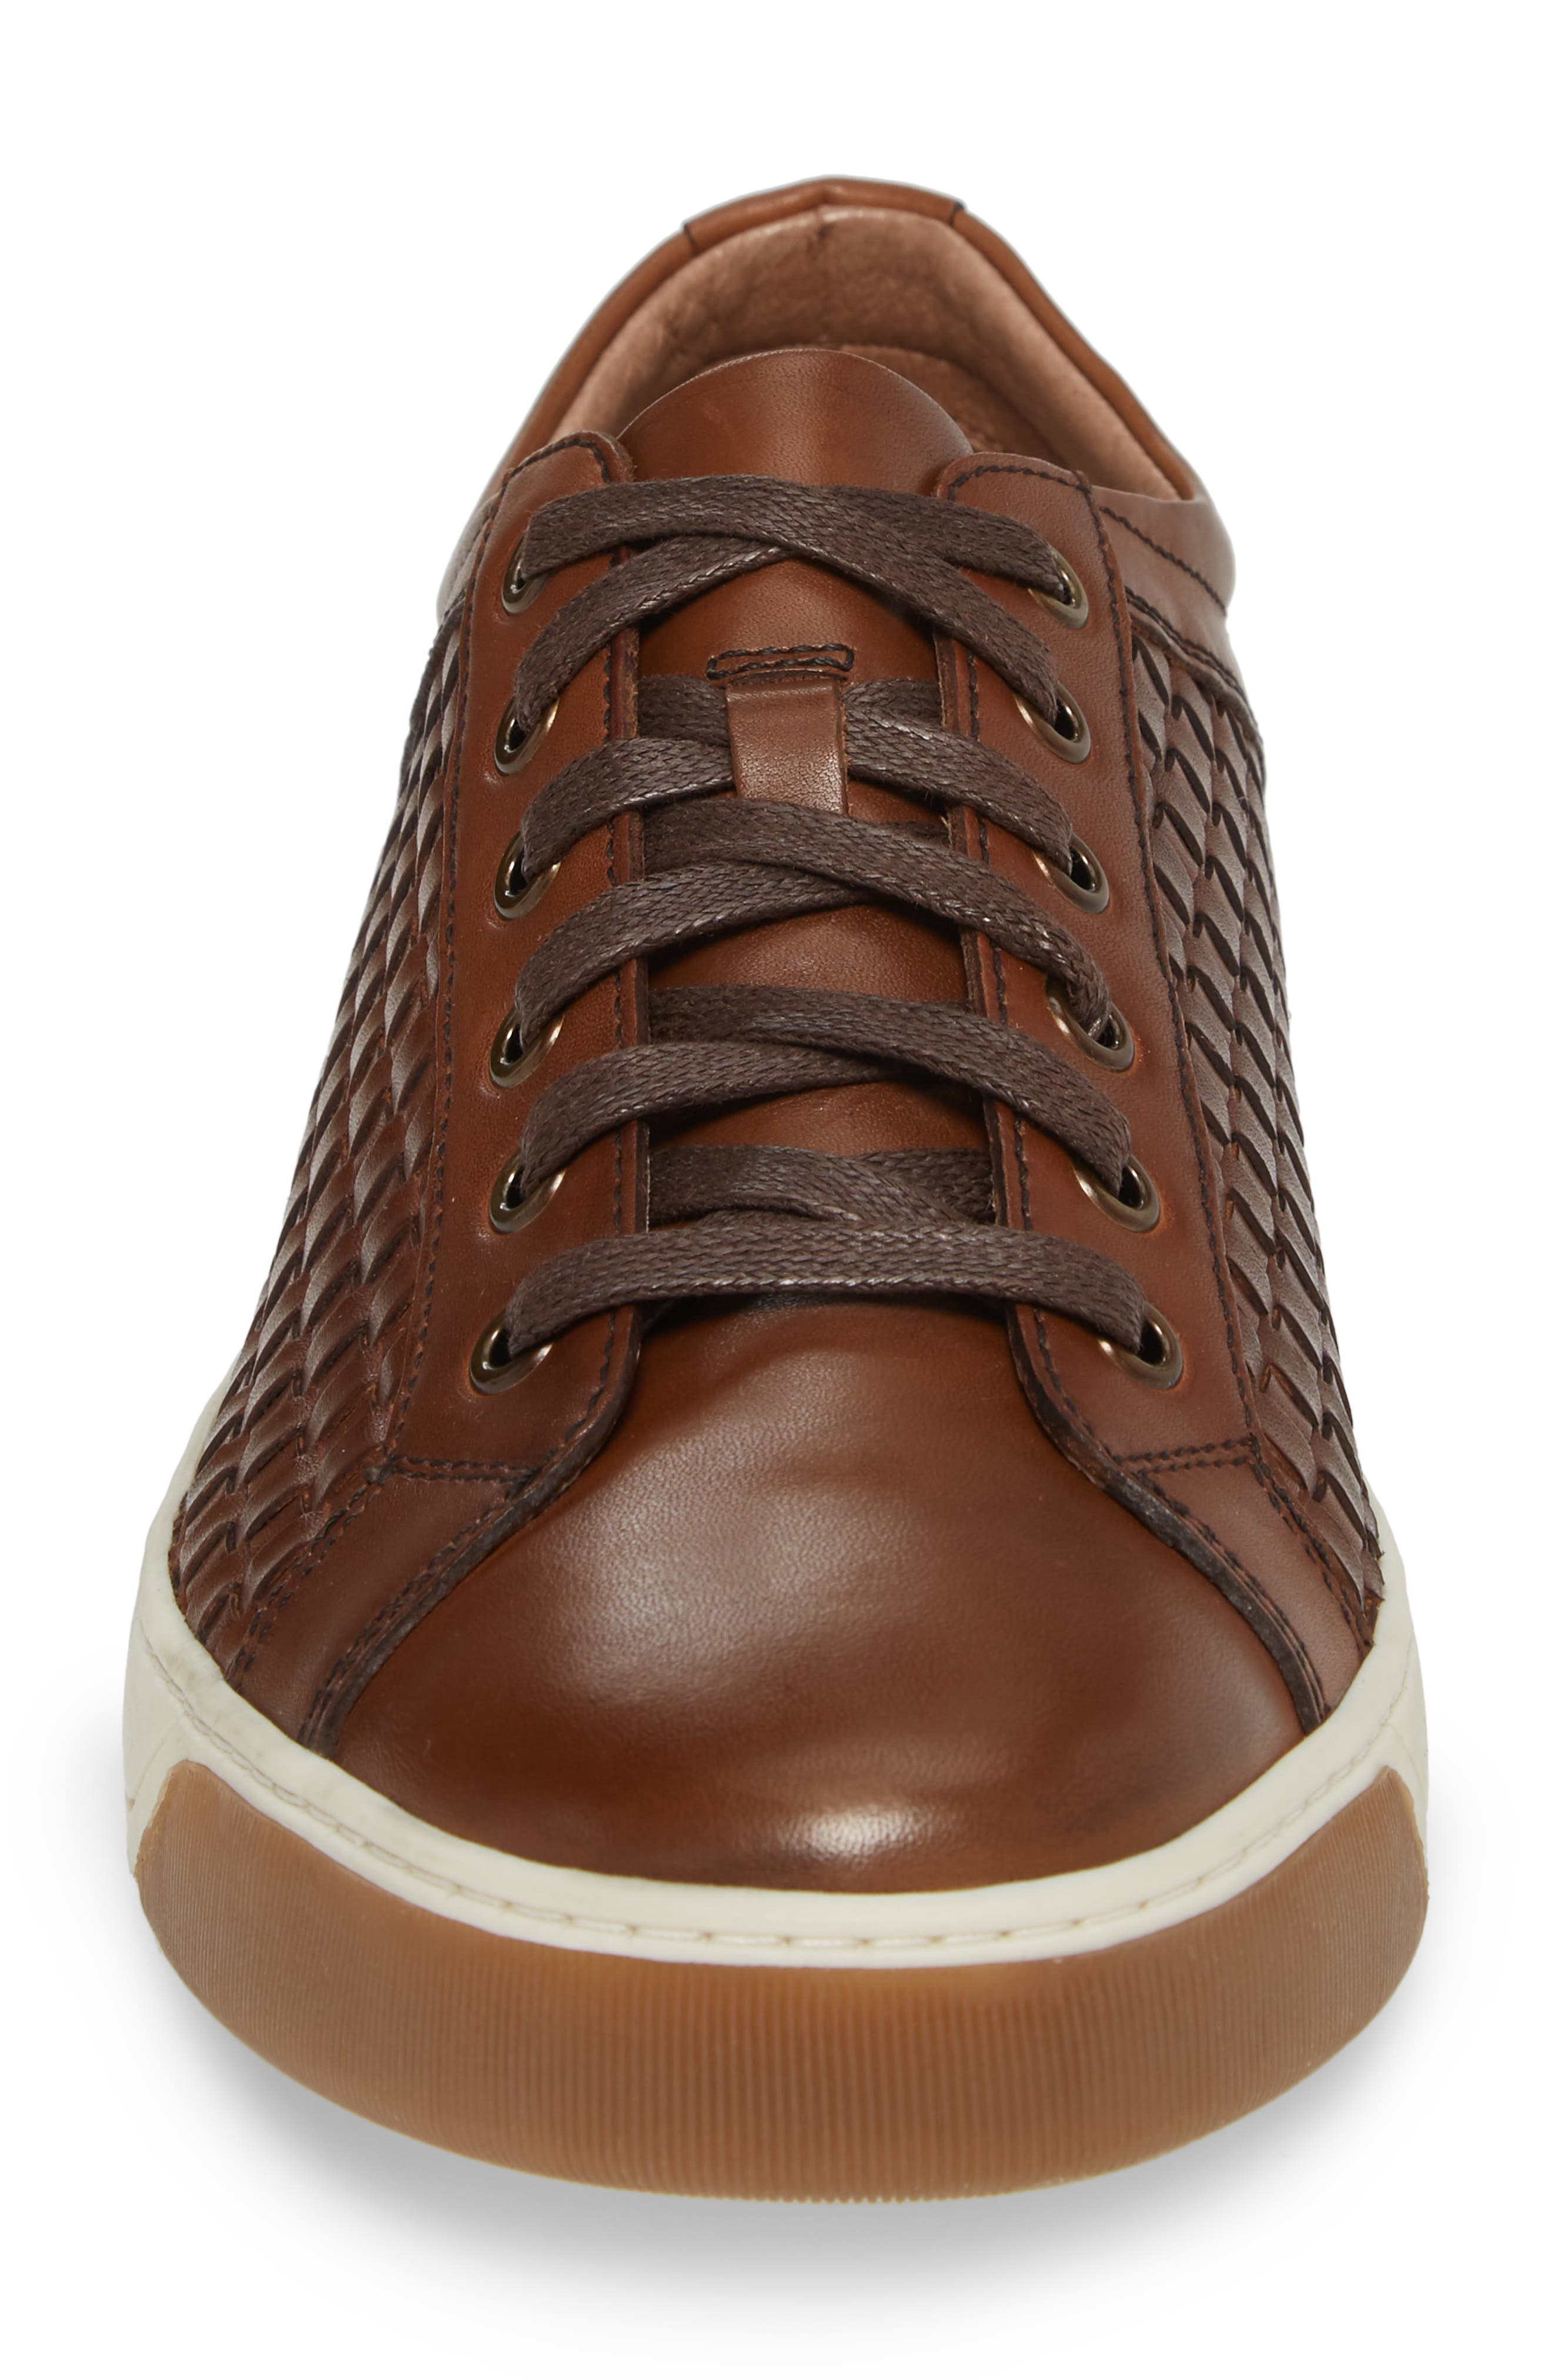 Allister Woven Low Top Sneaker,                             Alternate thumbnail 4, color,                             BROWN